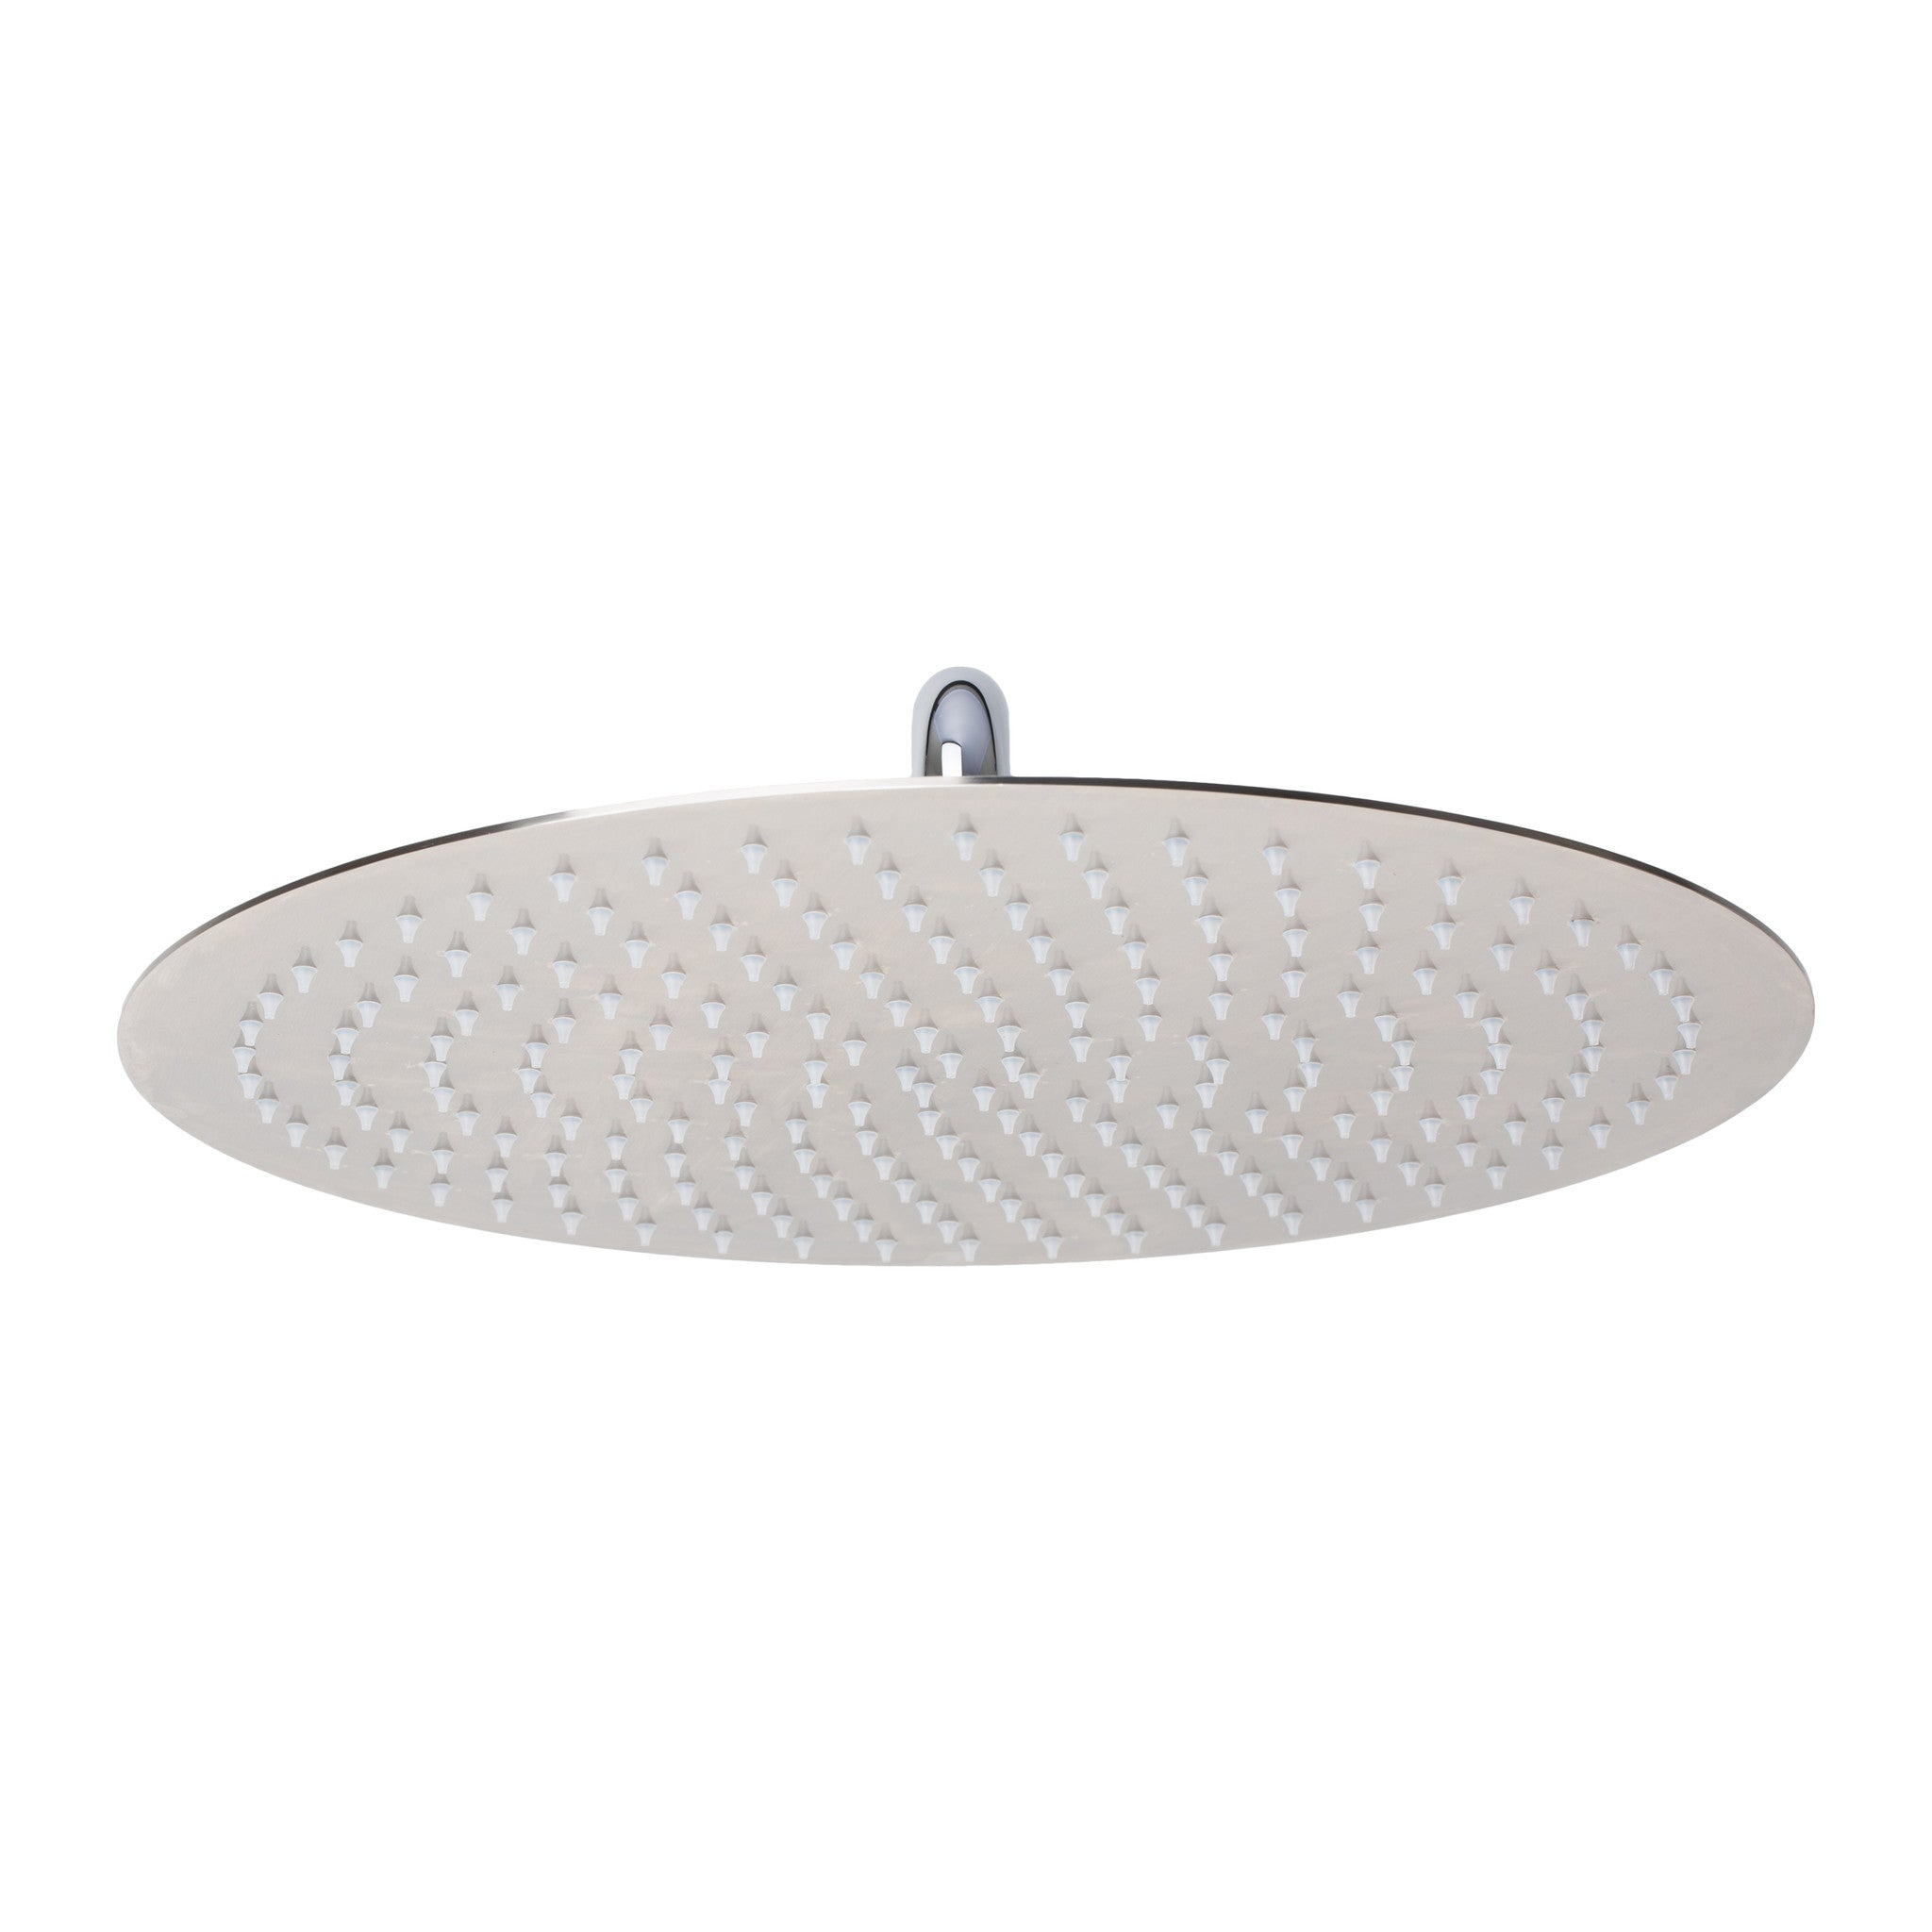 Bai 0415 Stainless Steel 16 Round Rainfall Shower Head Brushed